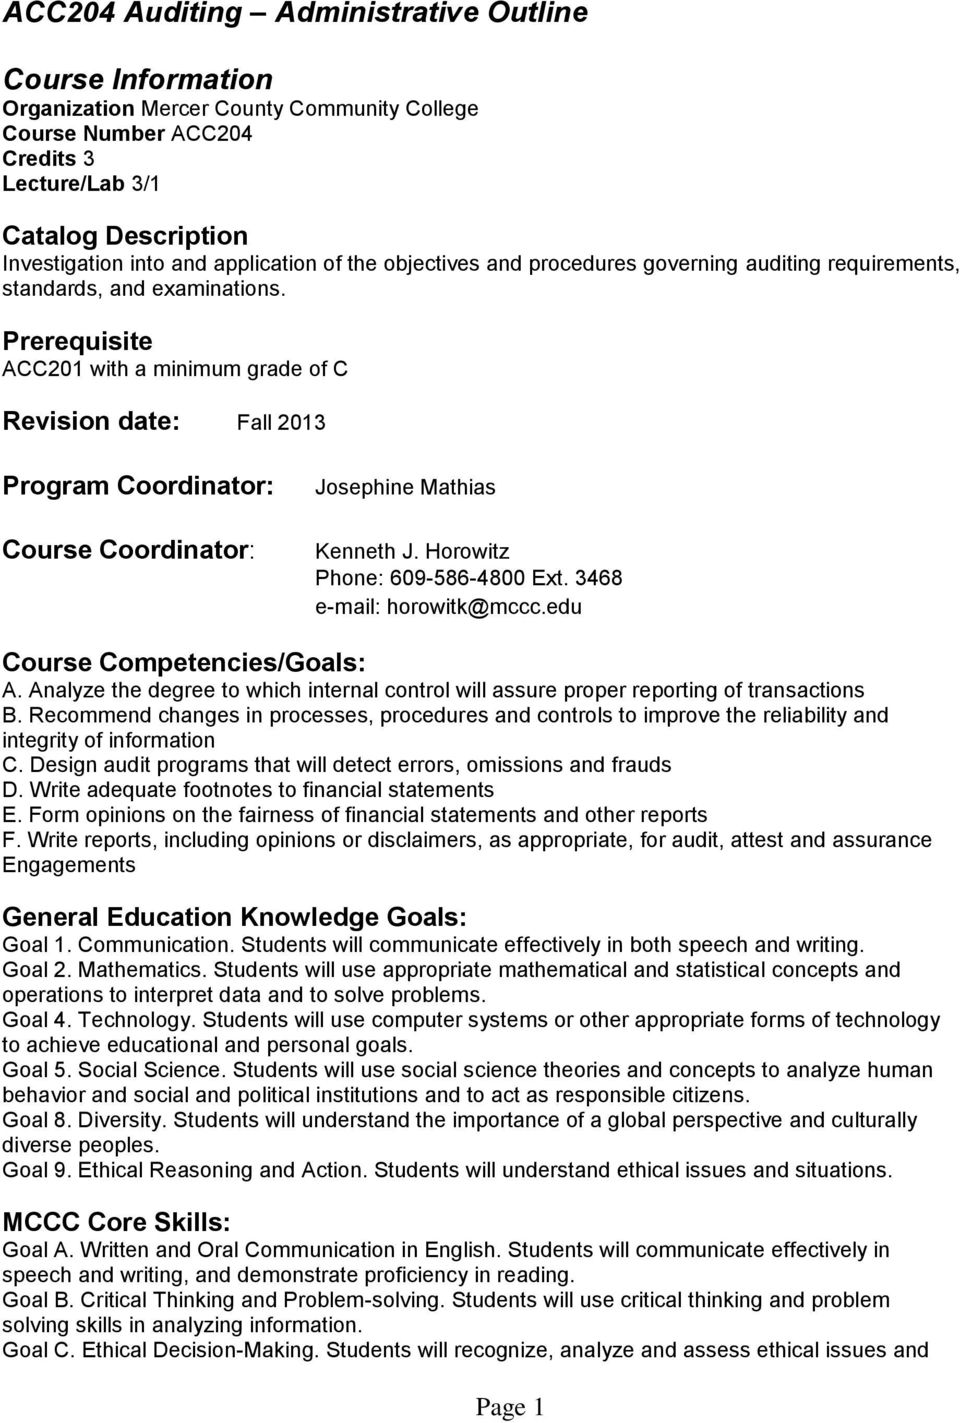 Prerequisite ACC201 with a minimum grade of C Revision date: Fall 2013 Program Coordinator: Course Coordinator: Josephine Mathias Kenneth J. Horowitz Phone: 609-586-4800 Ext.